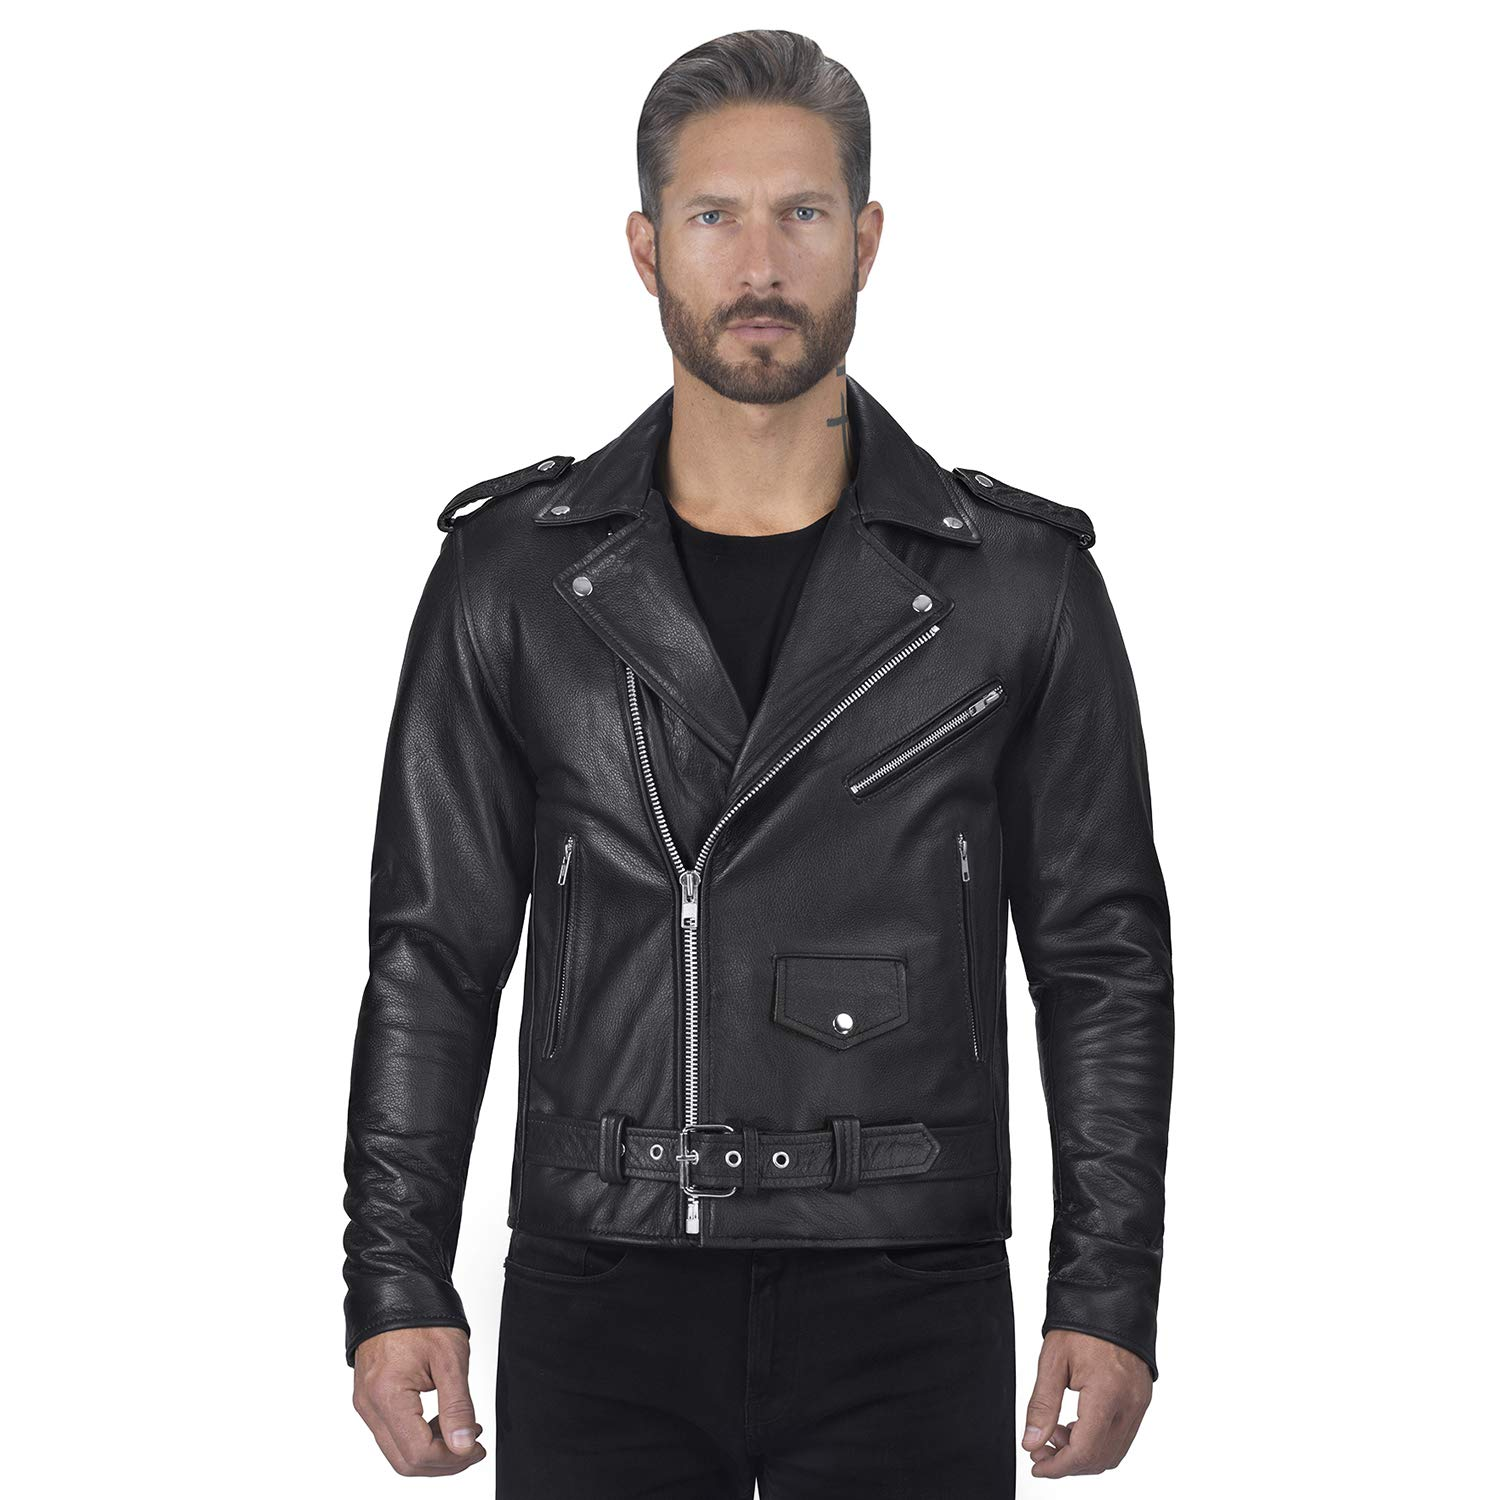 Viking Cycle Angel Fire Premium Grade Cowhide Leather Motorcycle Jacket for Men (X-Small) Black by Viking Cycle